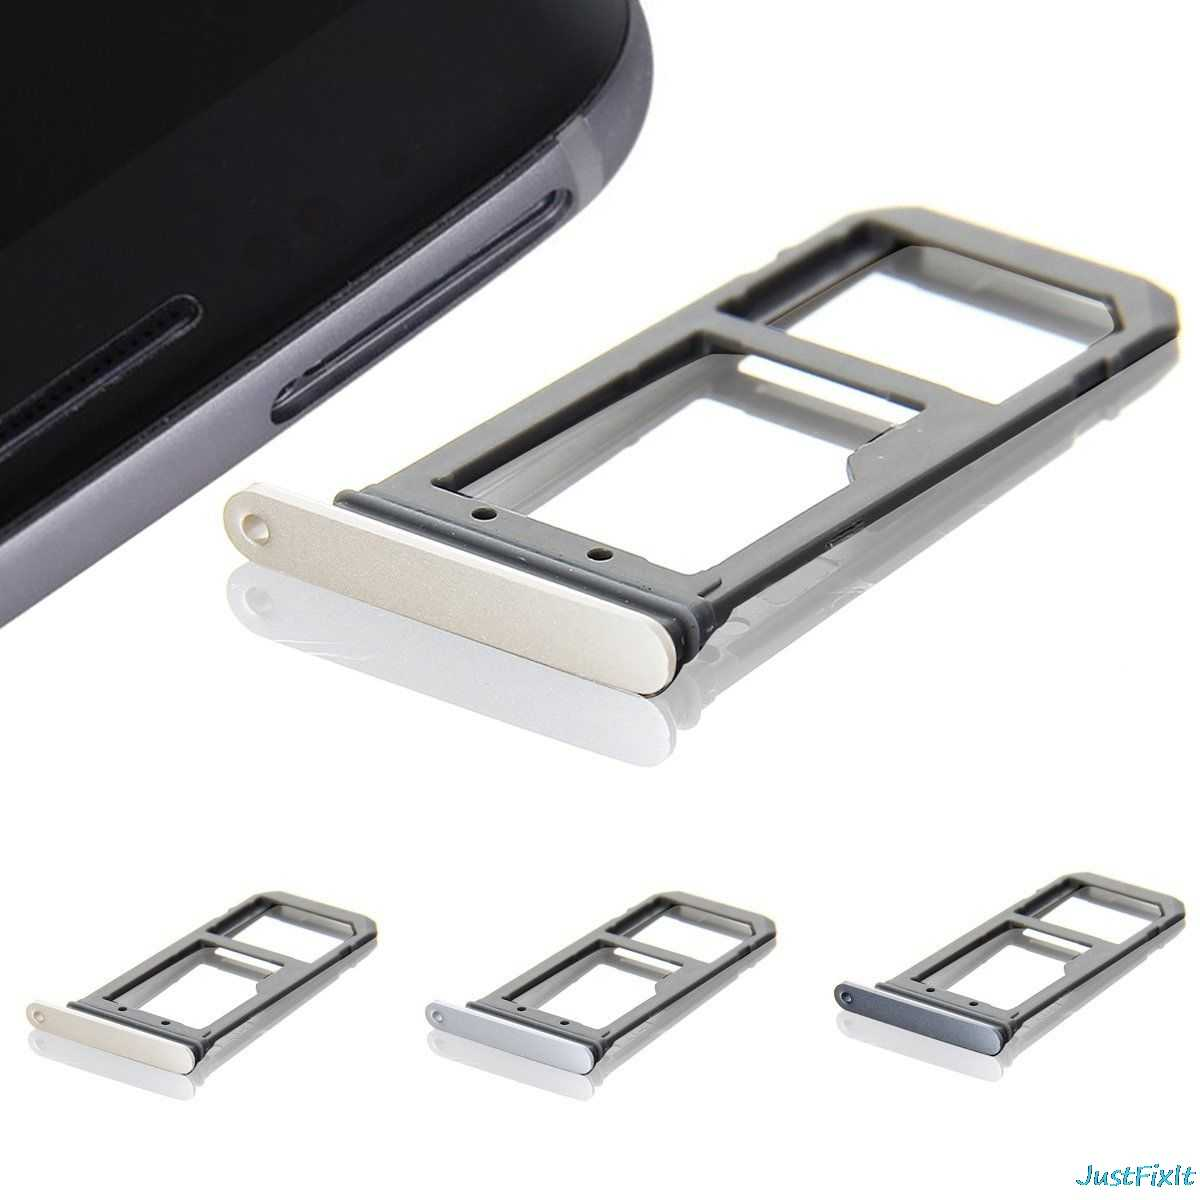 New SIM Card Tray Slot Holder For Samsung Galaxy S7 Edge G935f  G935a Replacement Case Repair Parts Sim Card Adapter